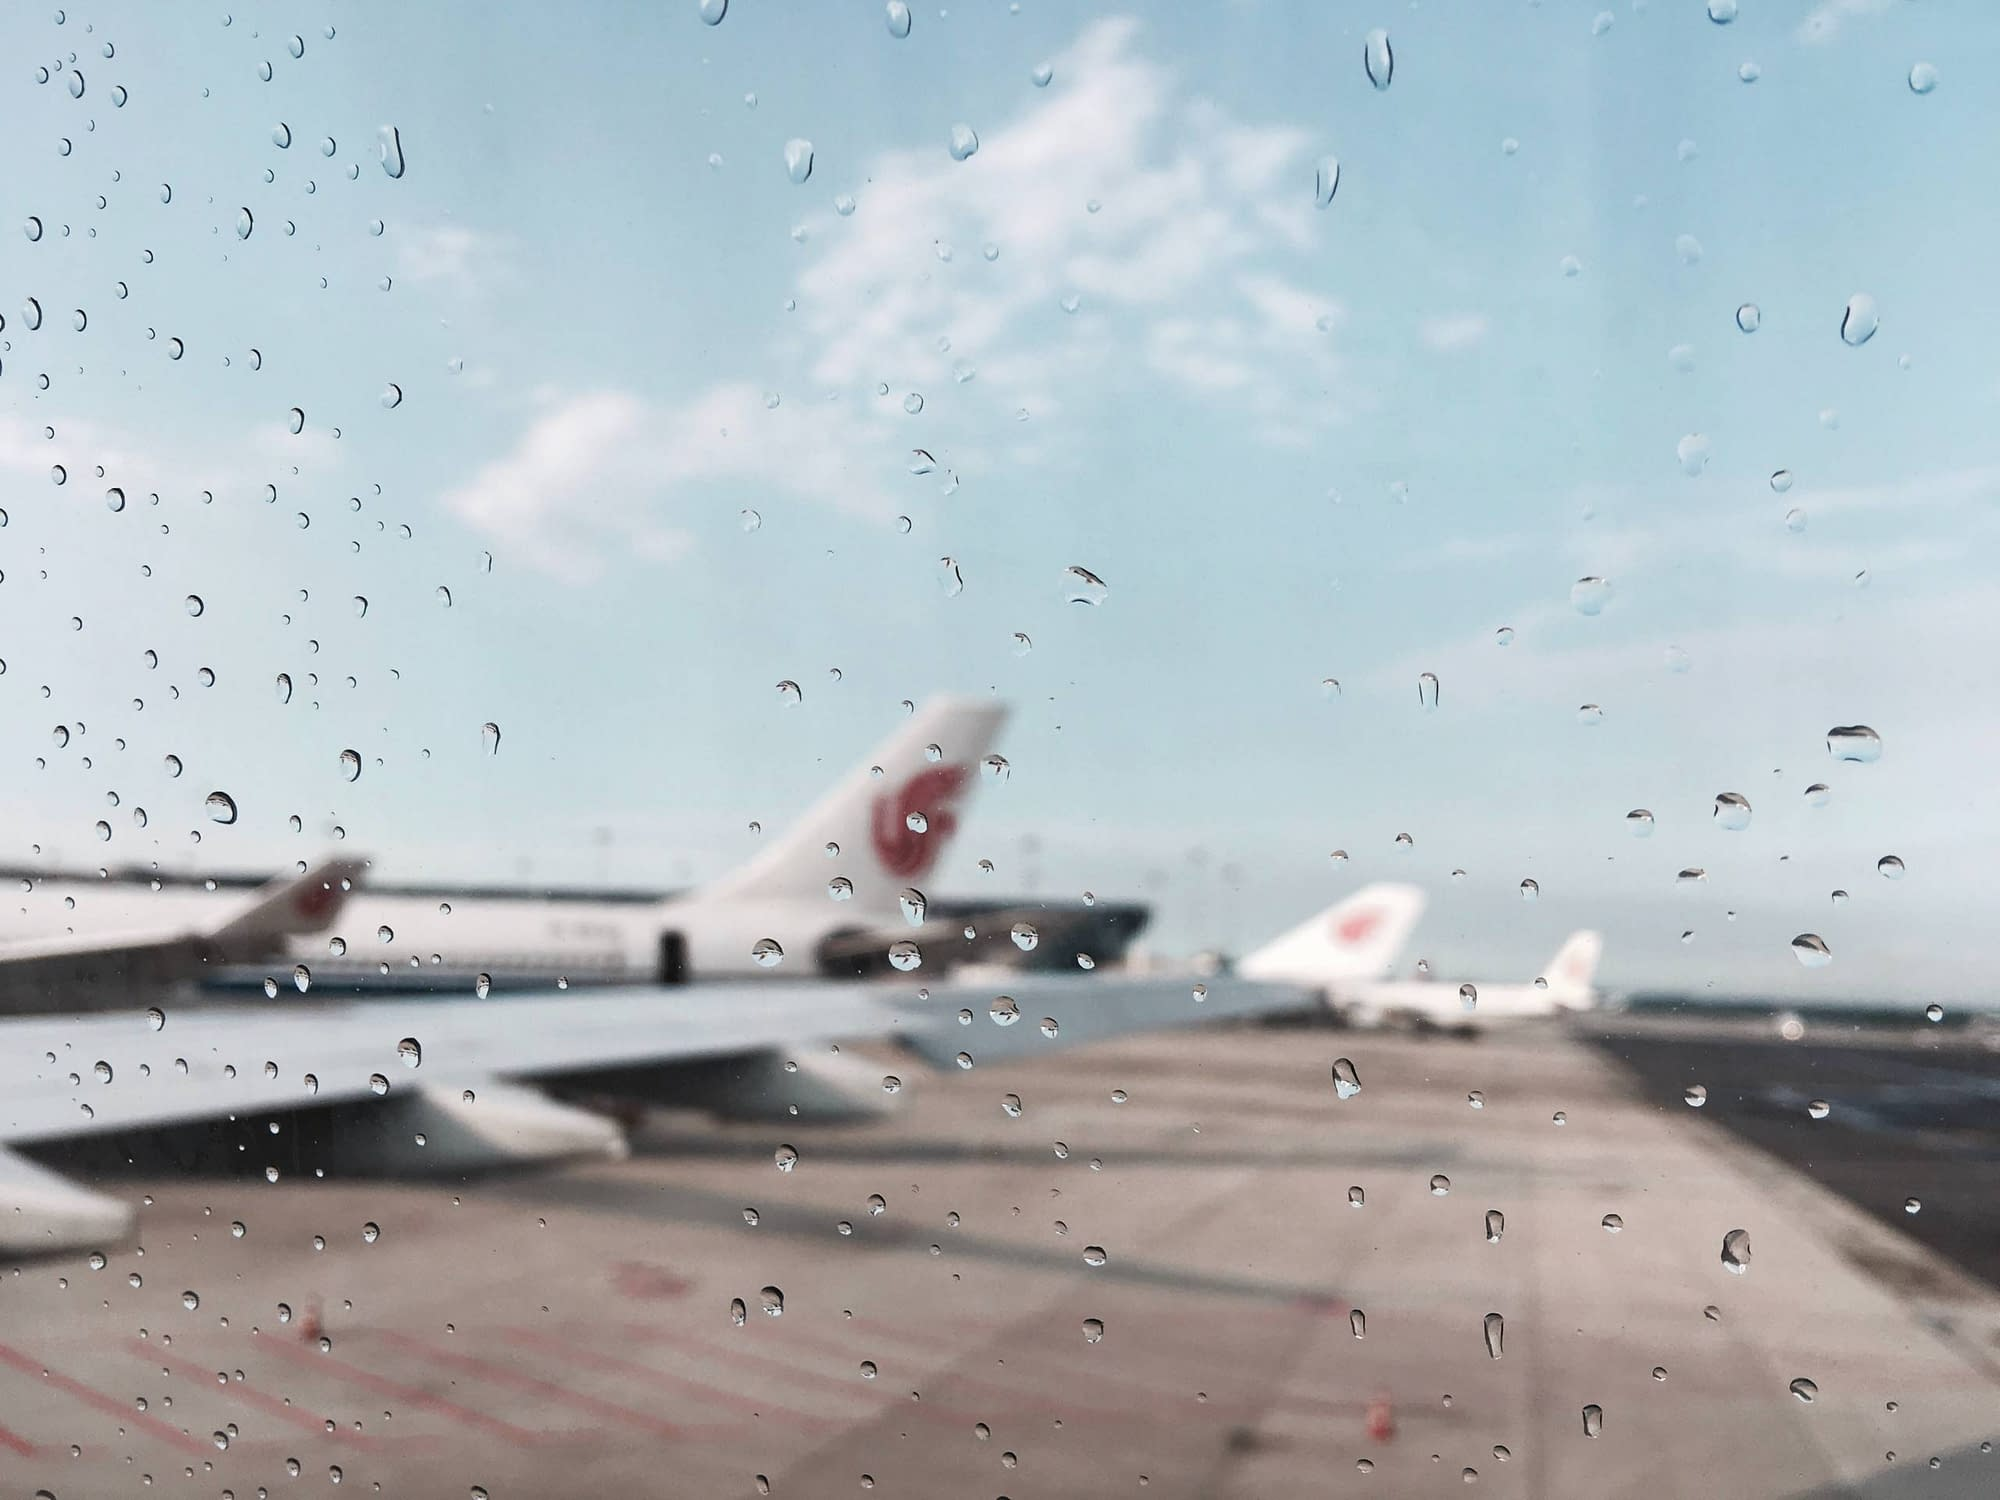 Airplanes through wet window